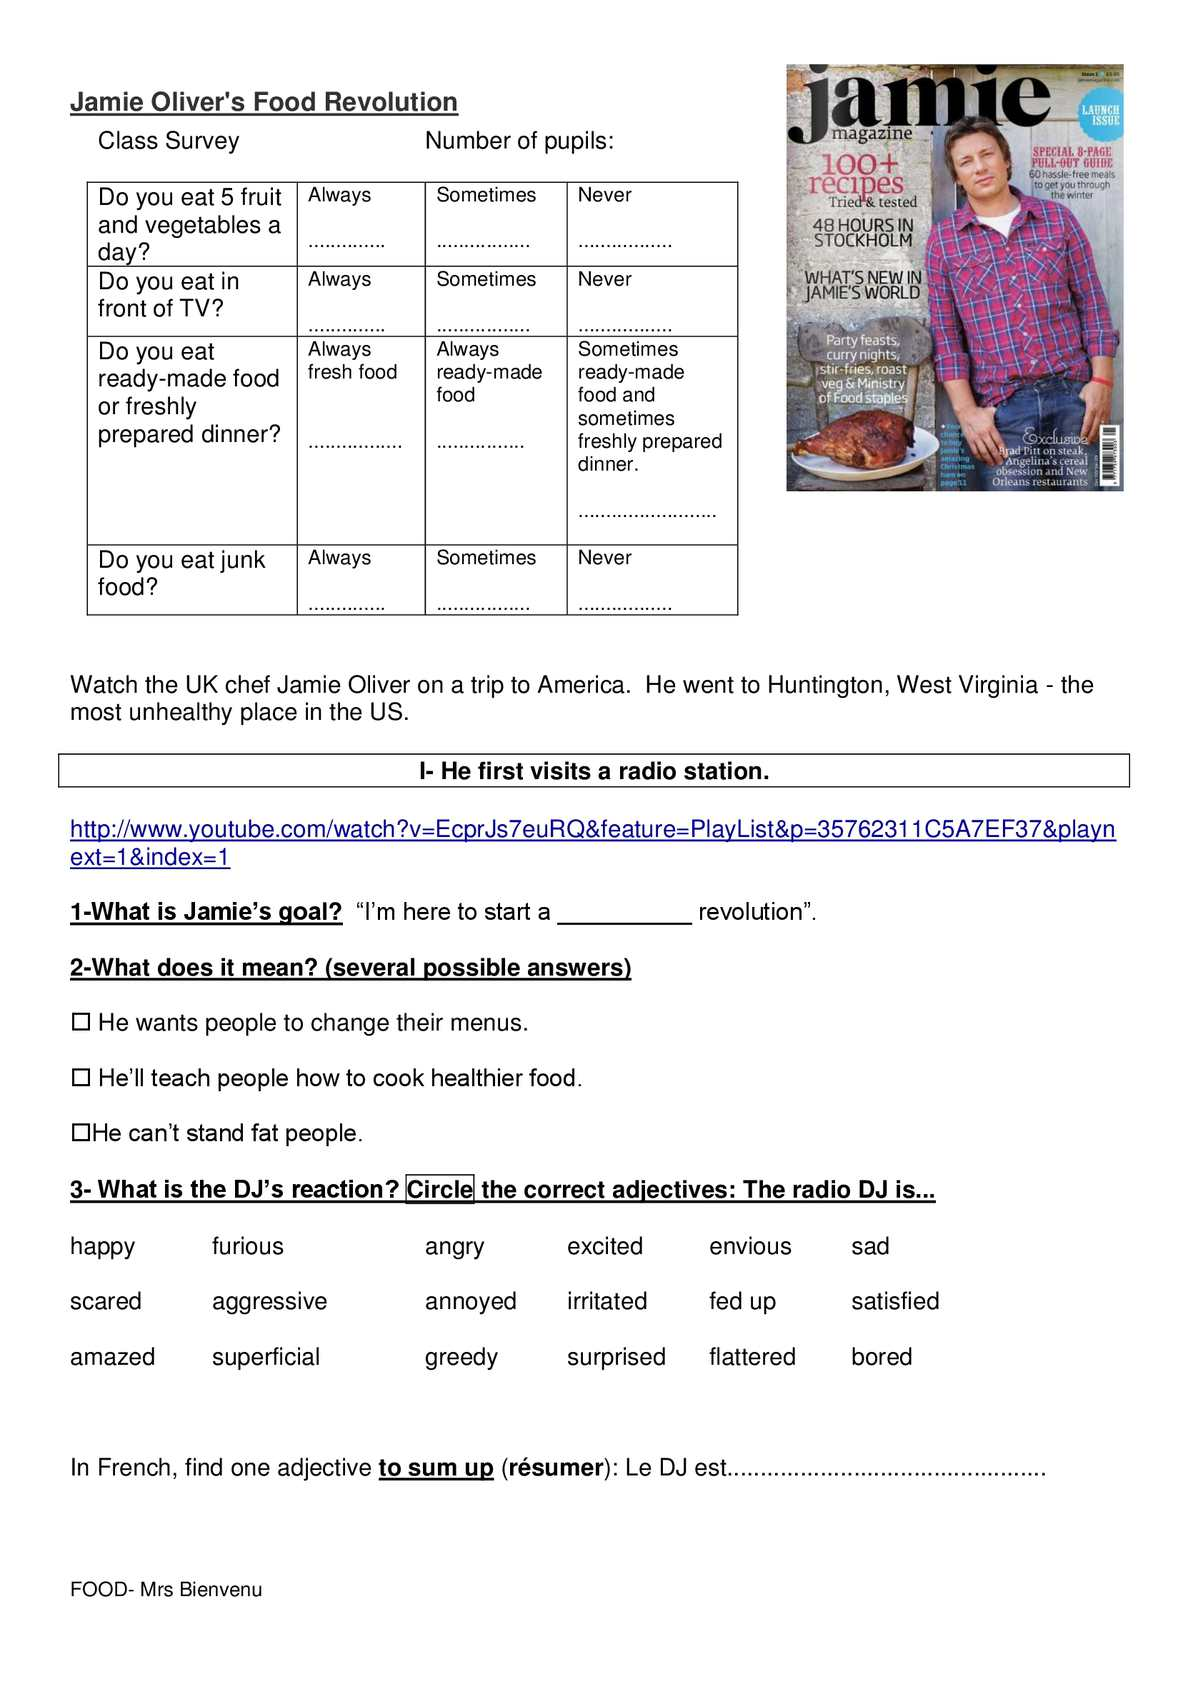 Jamie olivers food revolution 3 videos and worksheet with answer page 2 ibookread Download